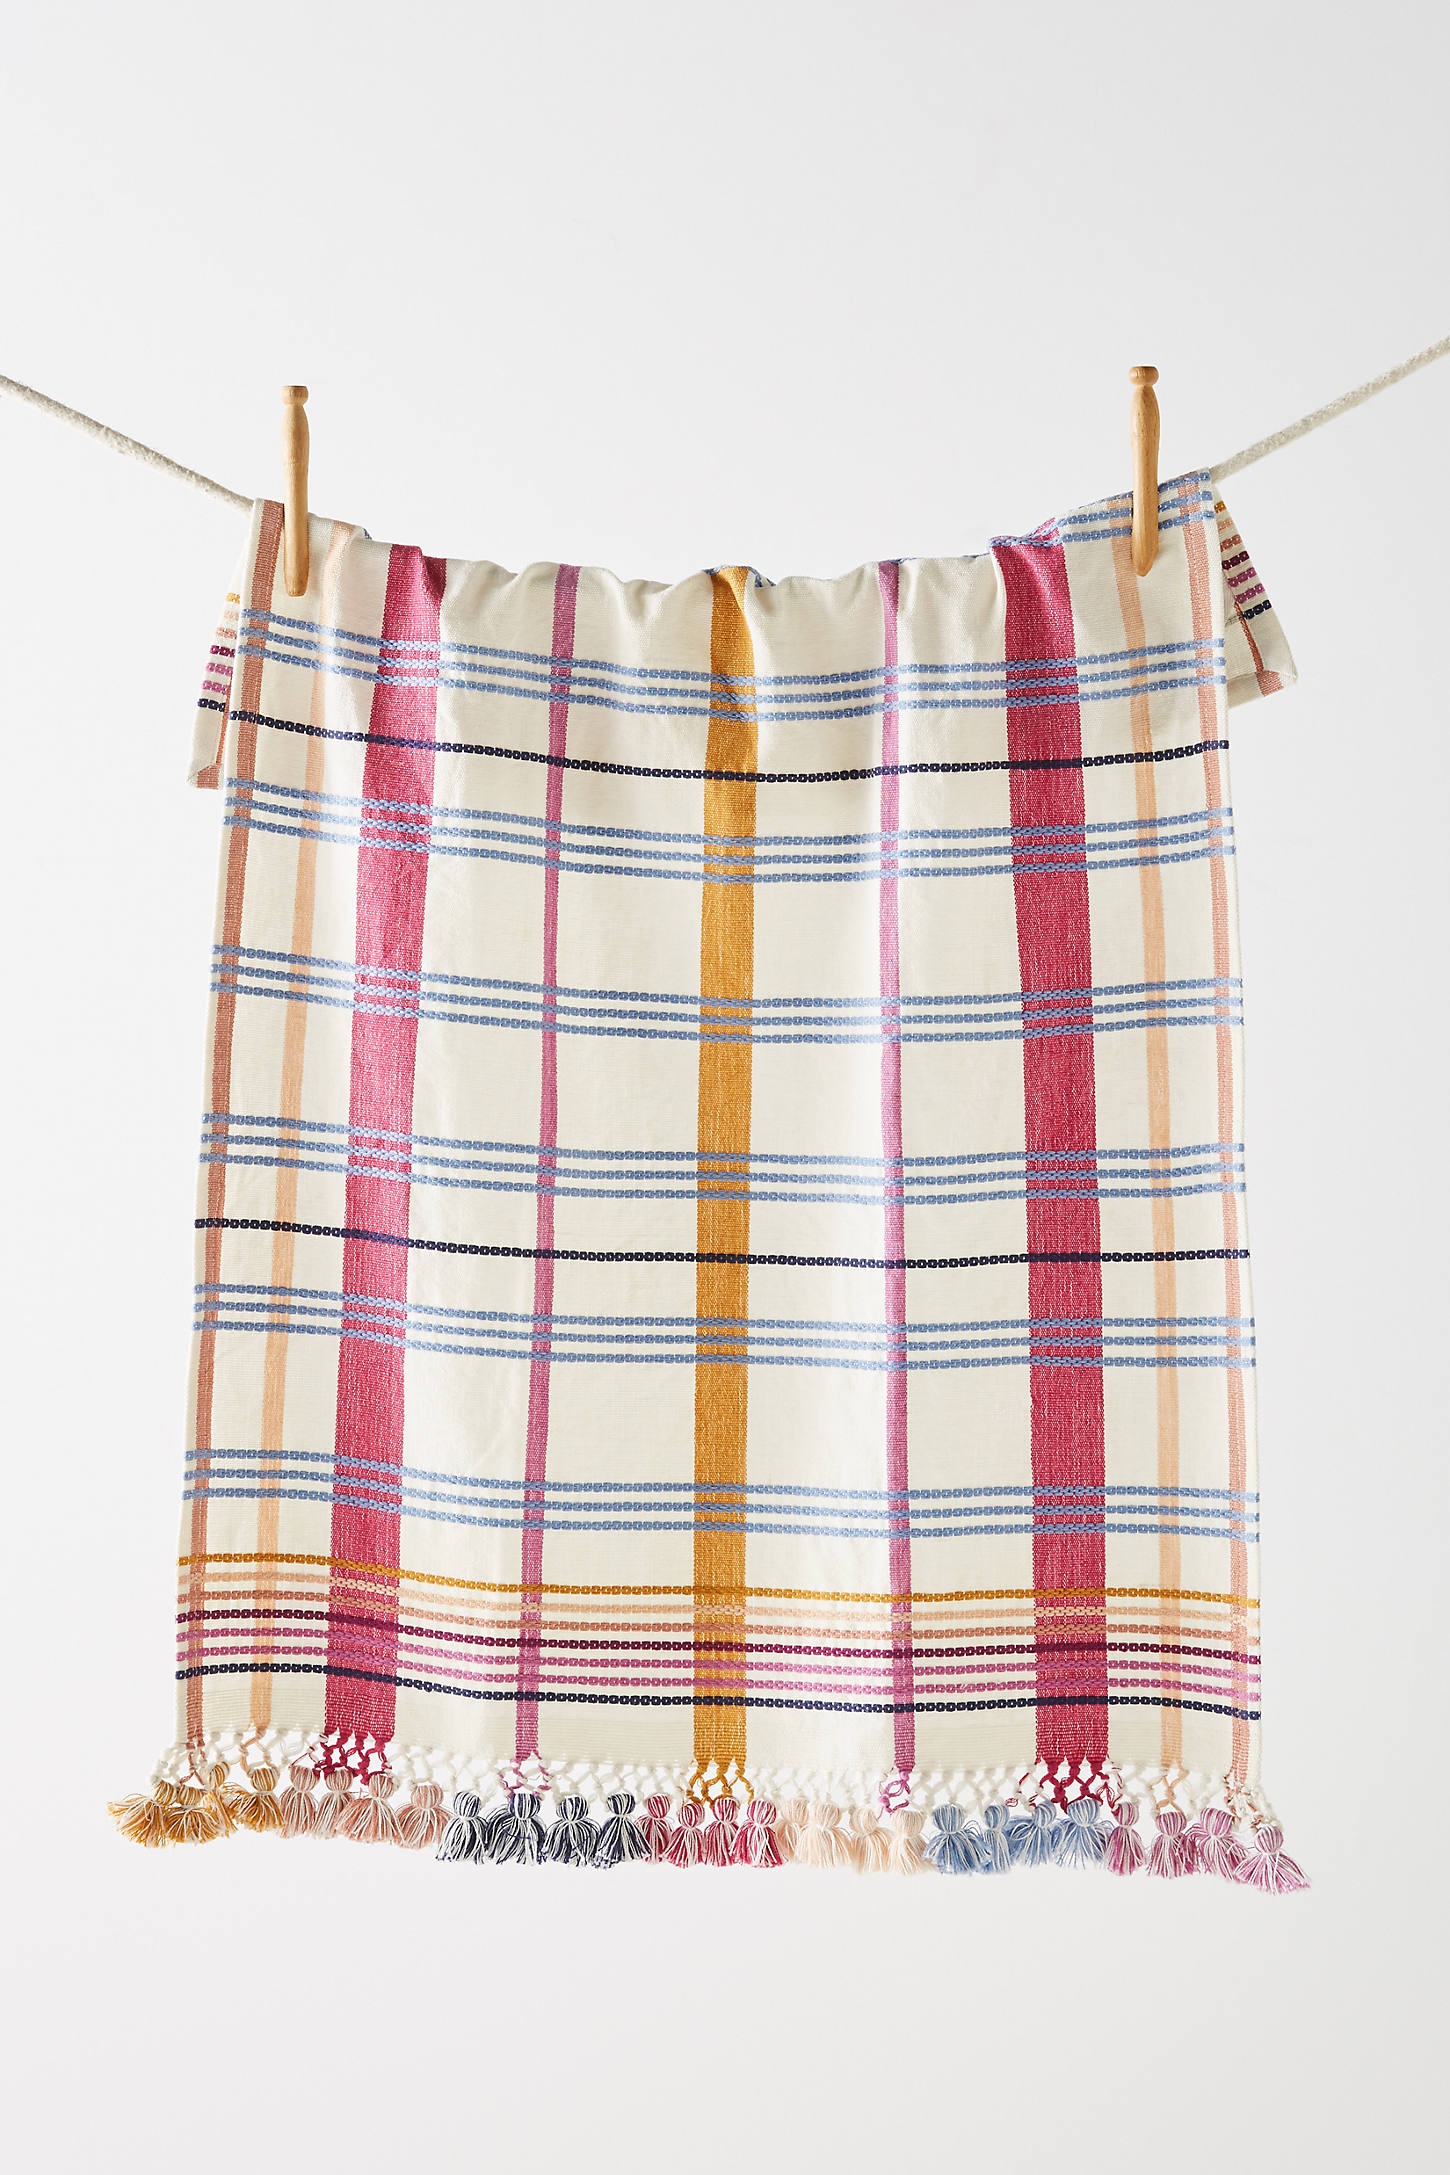 Fringed Serita Dish Towel